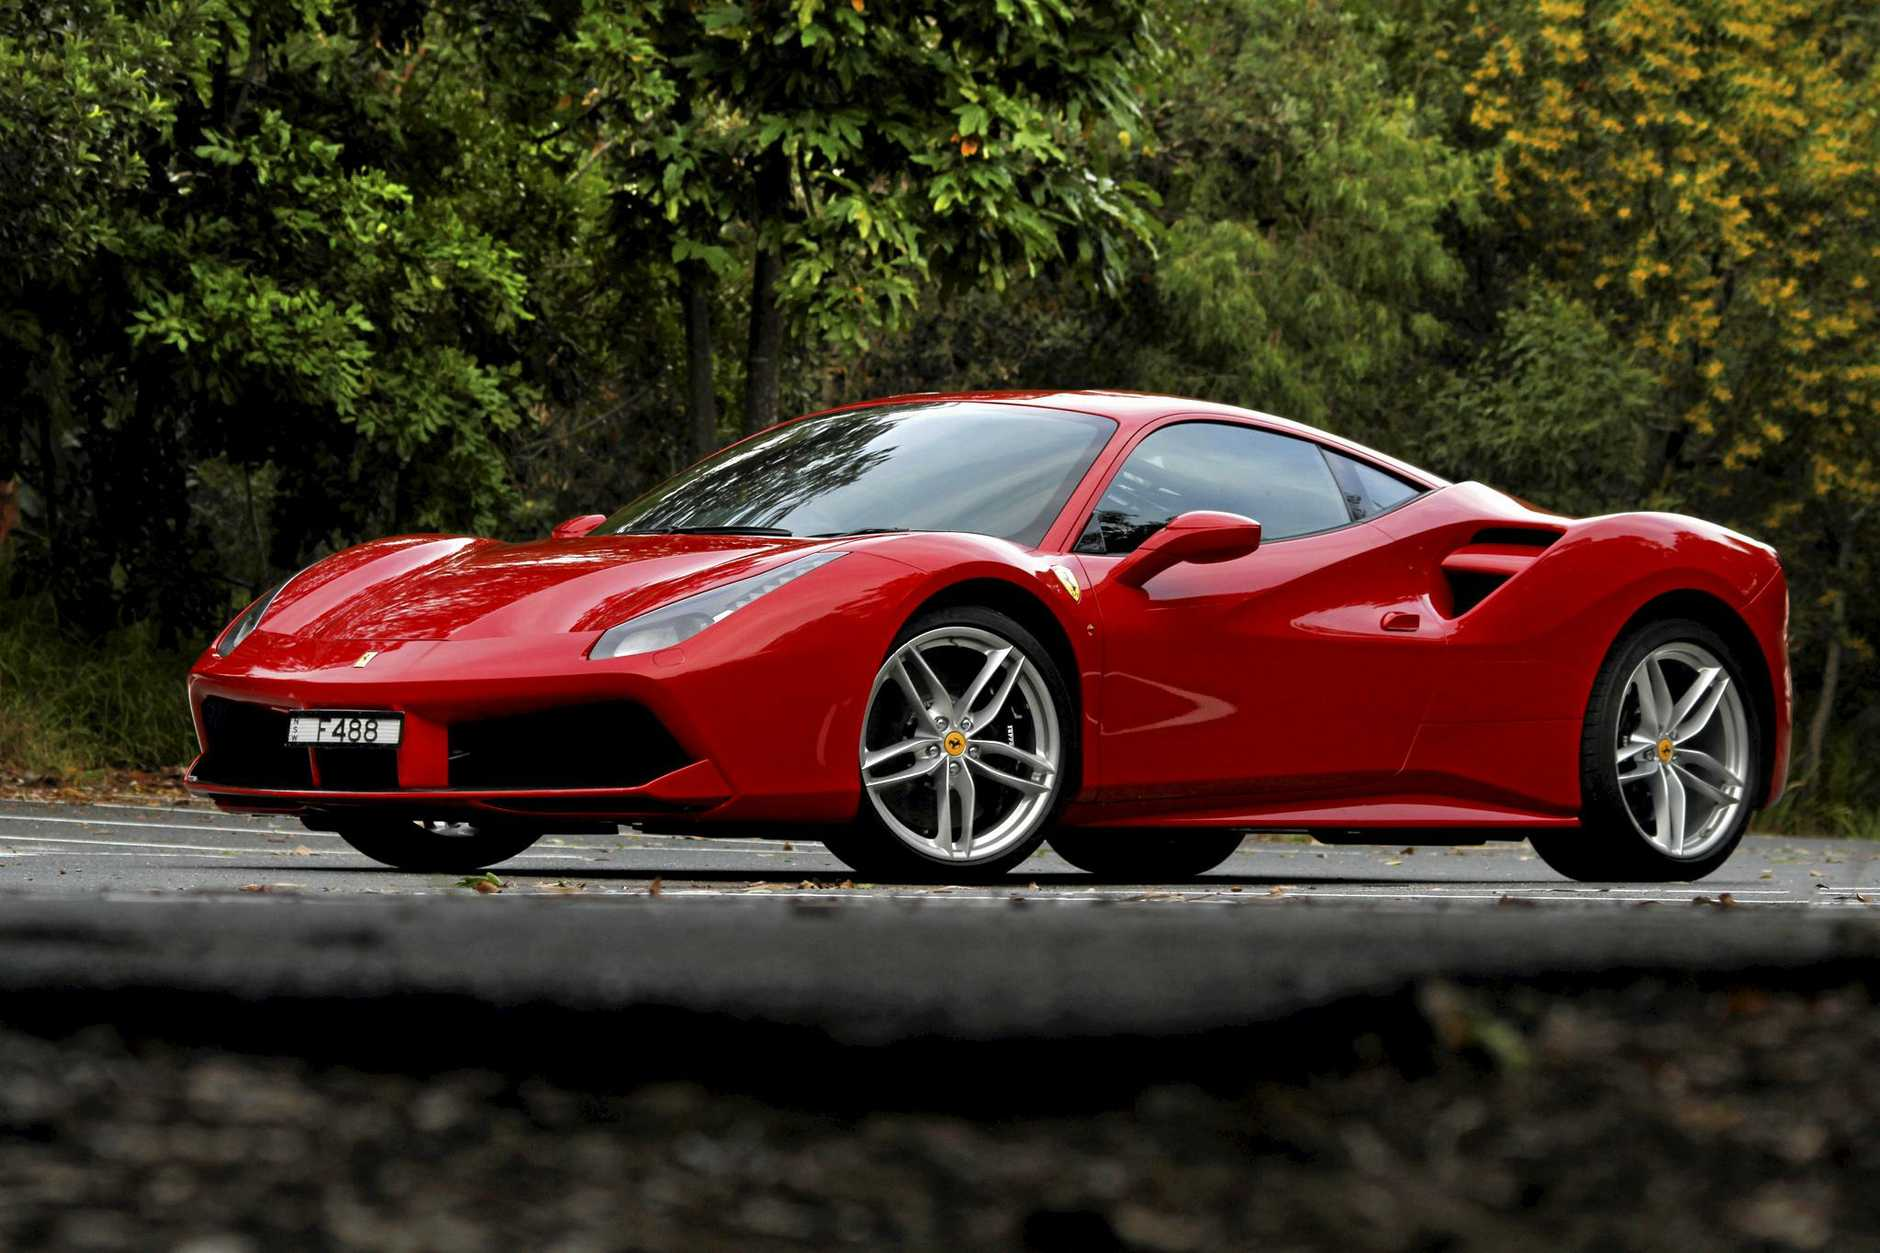 ALTERNATIVE: Instead, how about a brand new Ferrari 488 GTB?